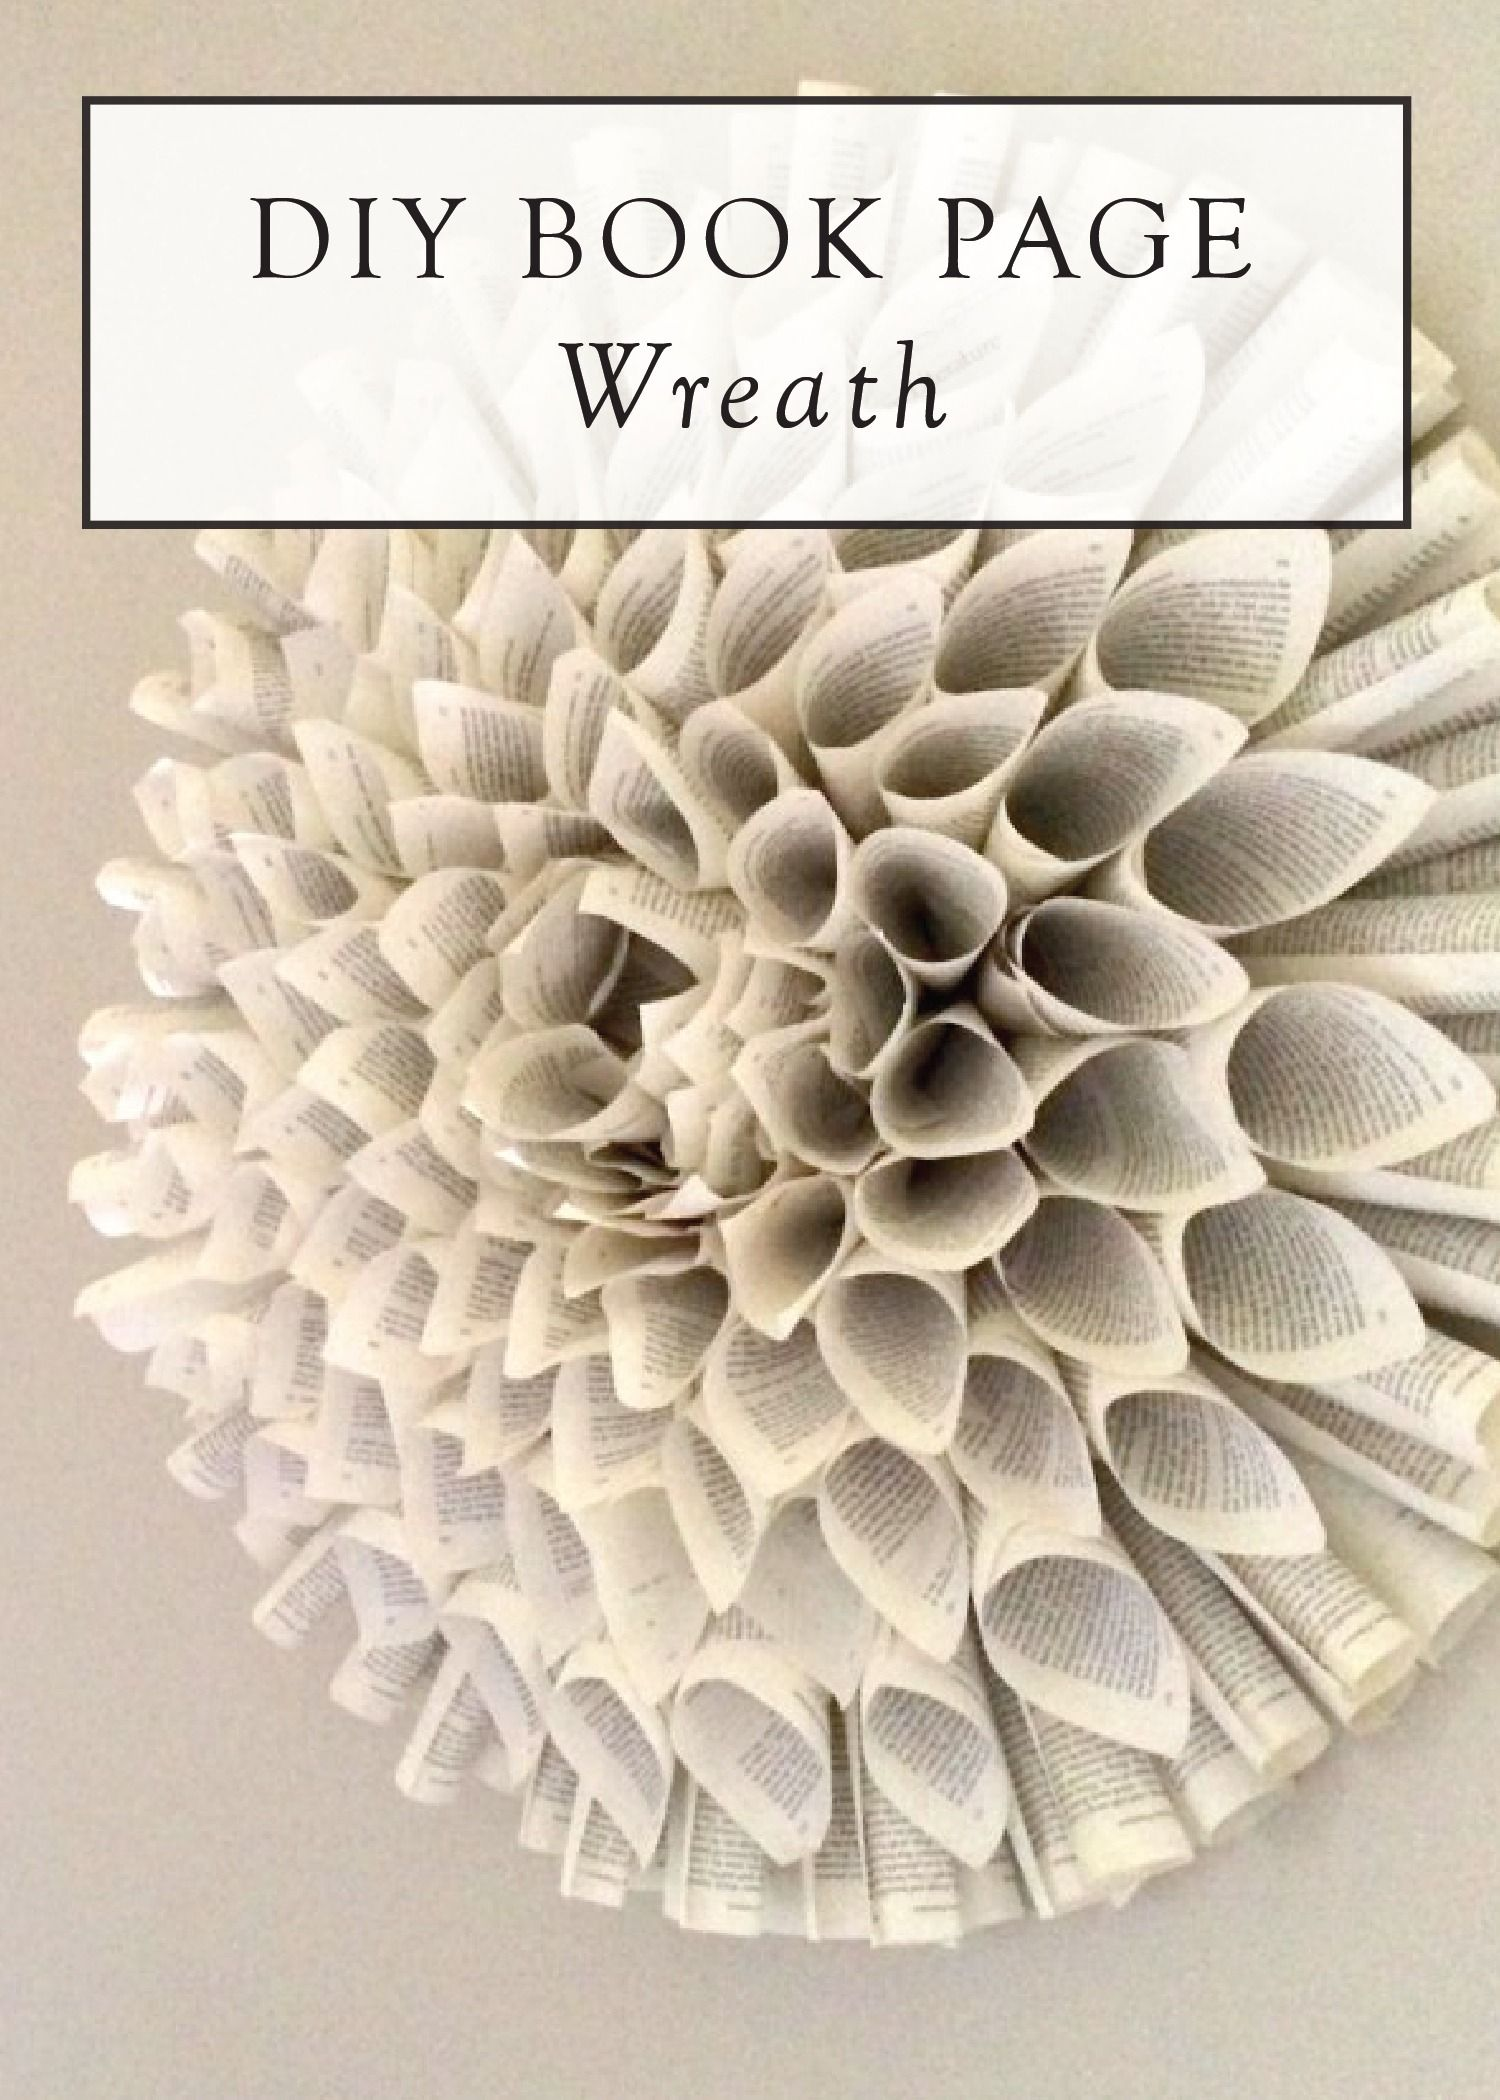 How To Make A Book Page Wreath And More Book Art Ideas Modern Mrs Darcy Book Page Wreath Book Wreath Book Crafts